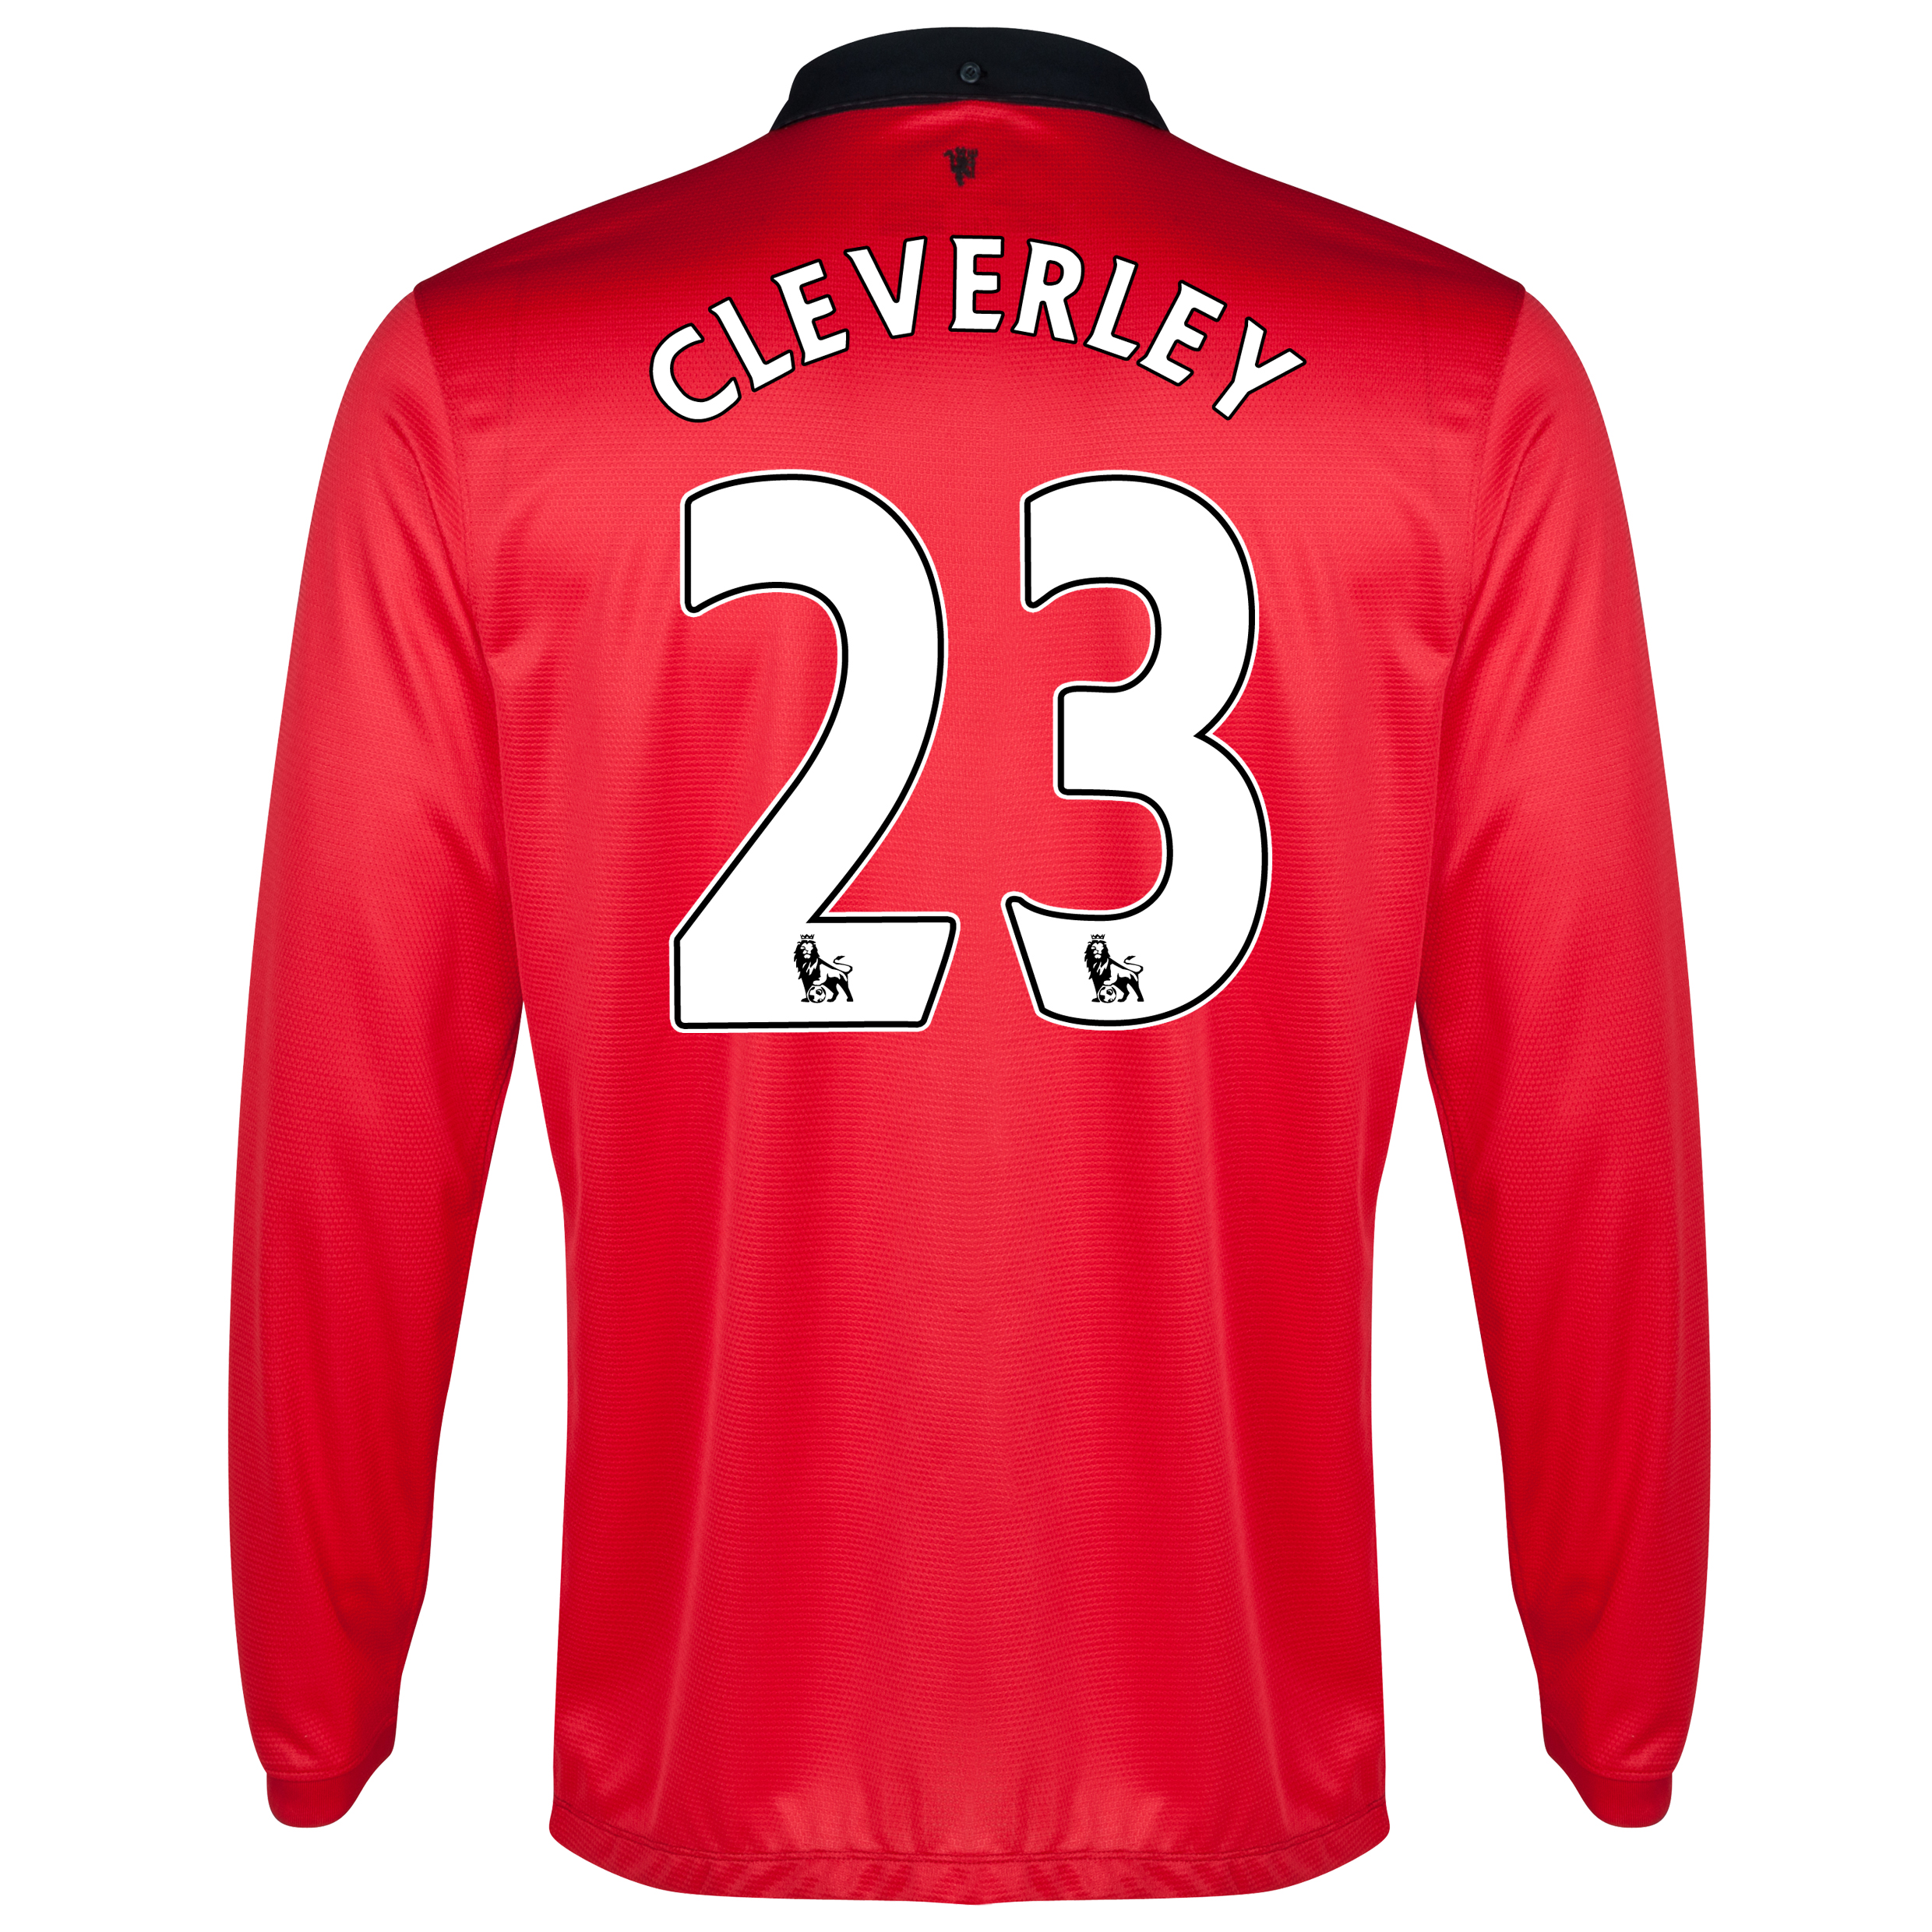 Manchester United Home Shirt 2013/14 - Long Sleeved with Cleverley 23 printing